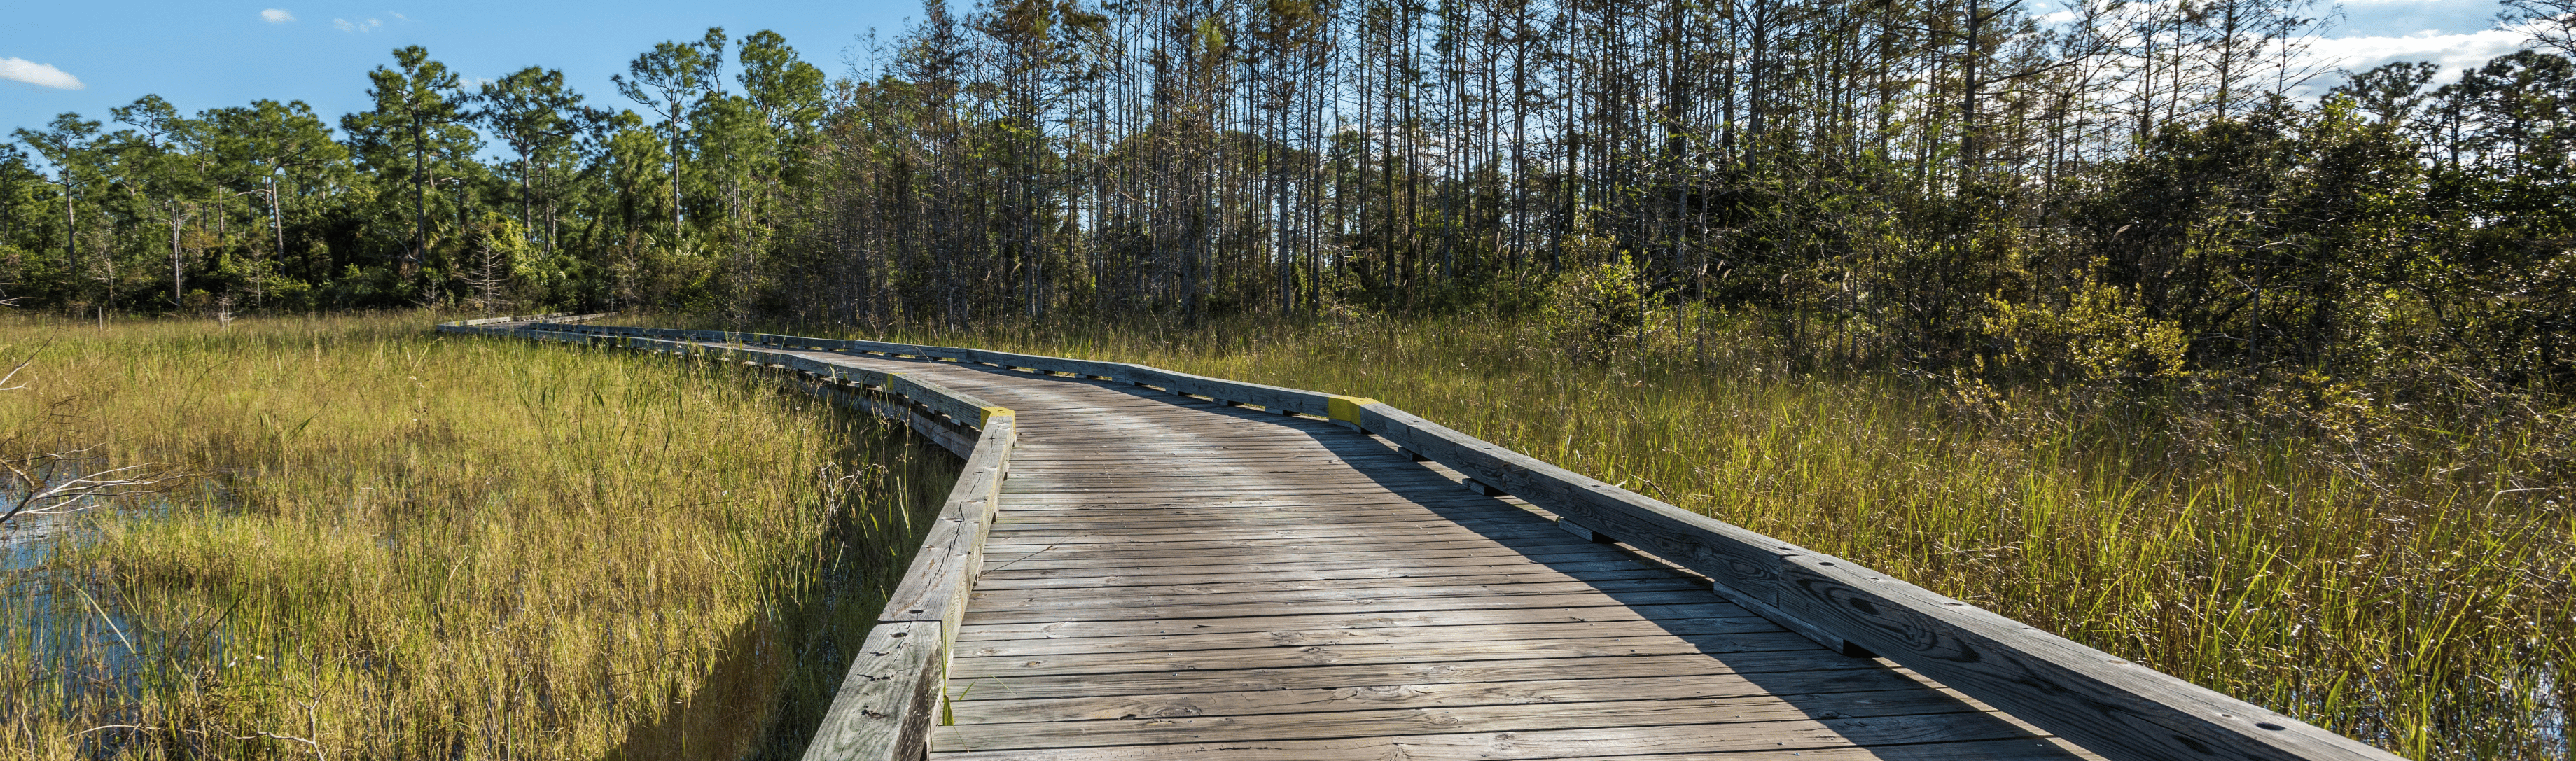 Boardwalk through Course